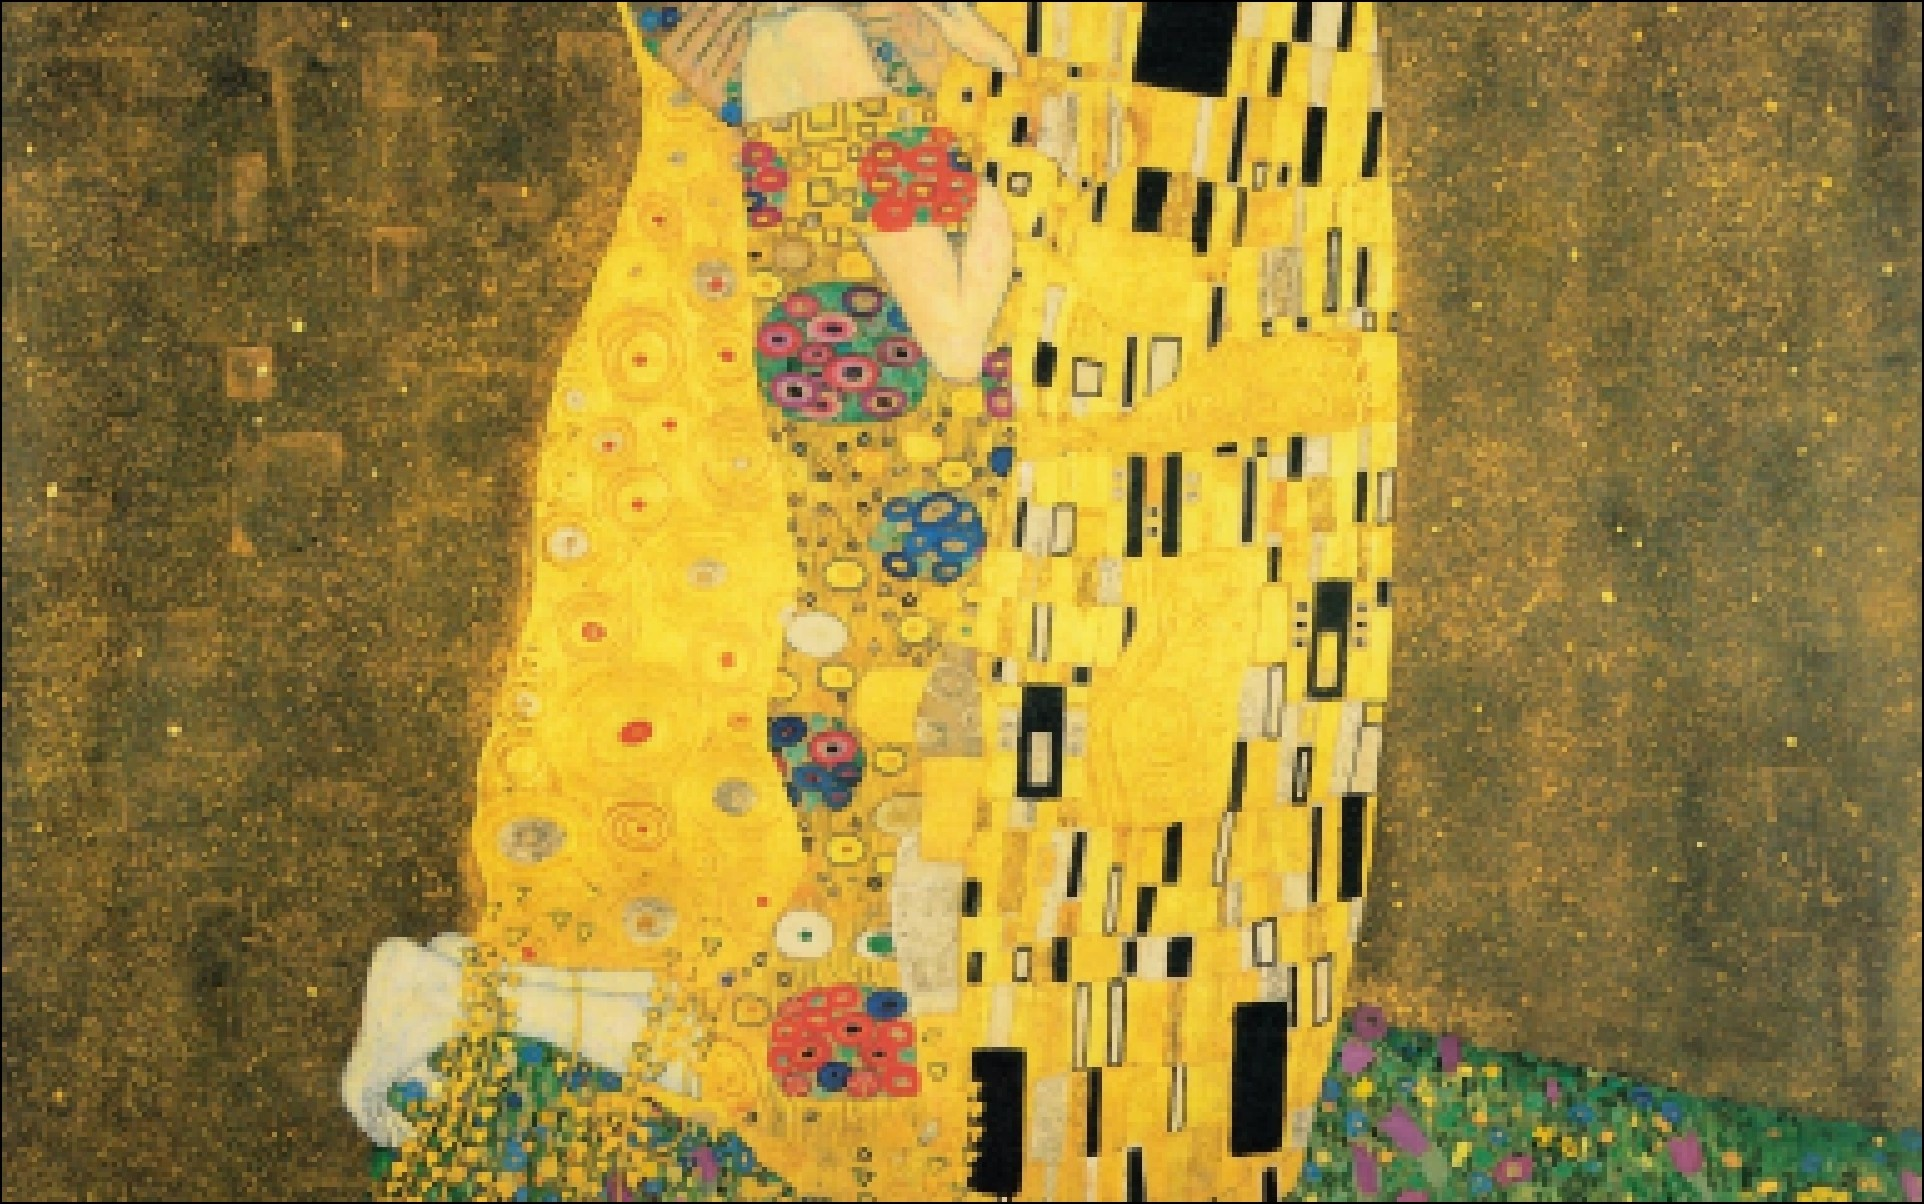 1924x1204 Gustav Klimt Wallpaper 1 - Gustav Klimt Wallpaper 1.jpg.